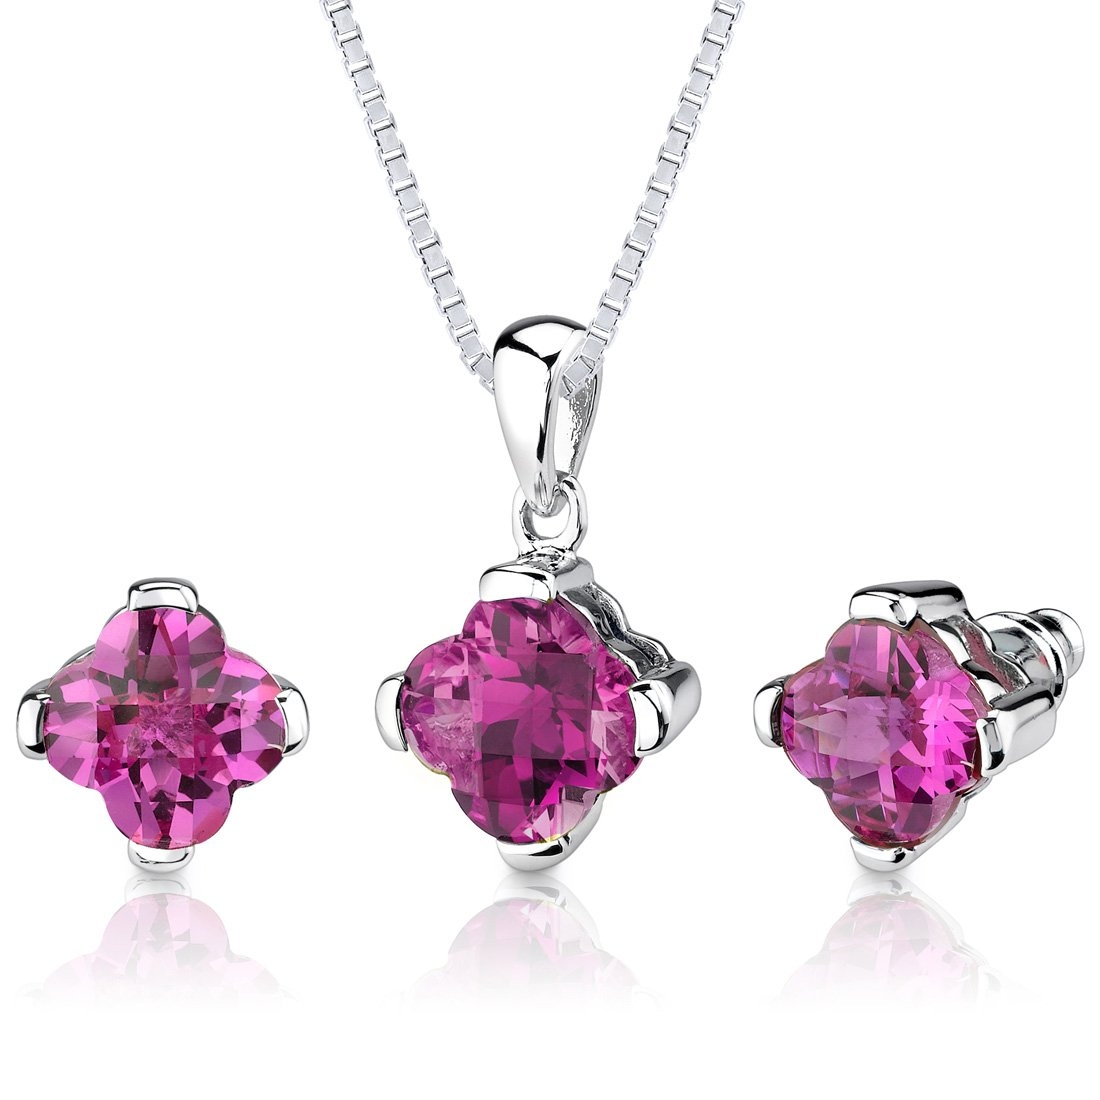 Peora Created Pink Sapphire Pendant Earrings Set Sterling Silver Lily Cut 10.25 Carats